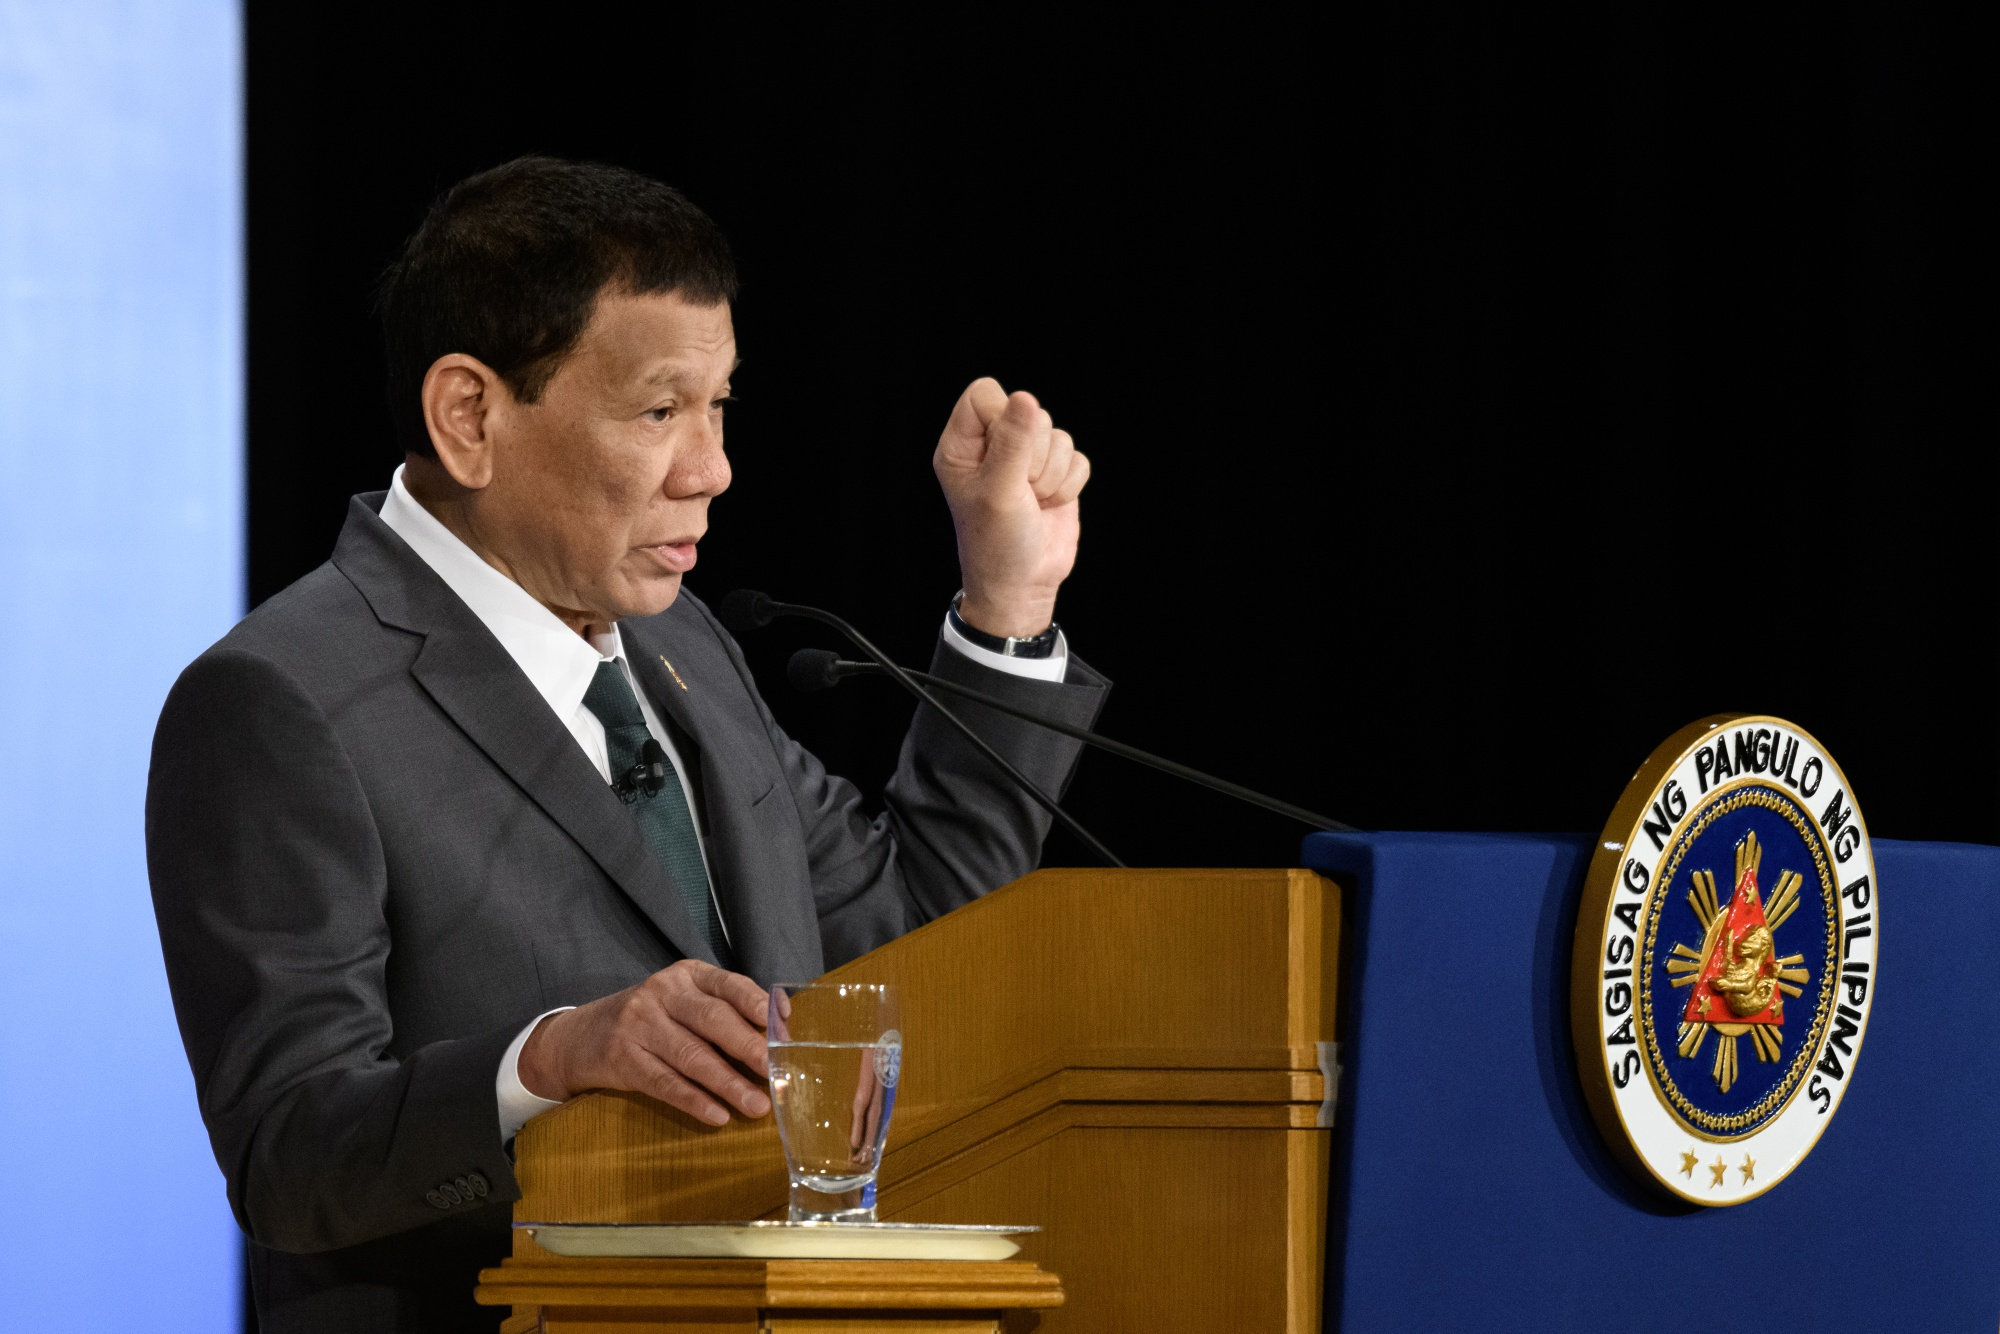 Duterte Won't Let Up on Deadly Drug War Amid Calls for UN Probe